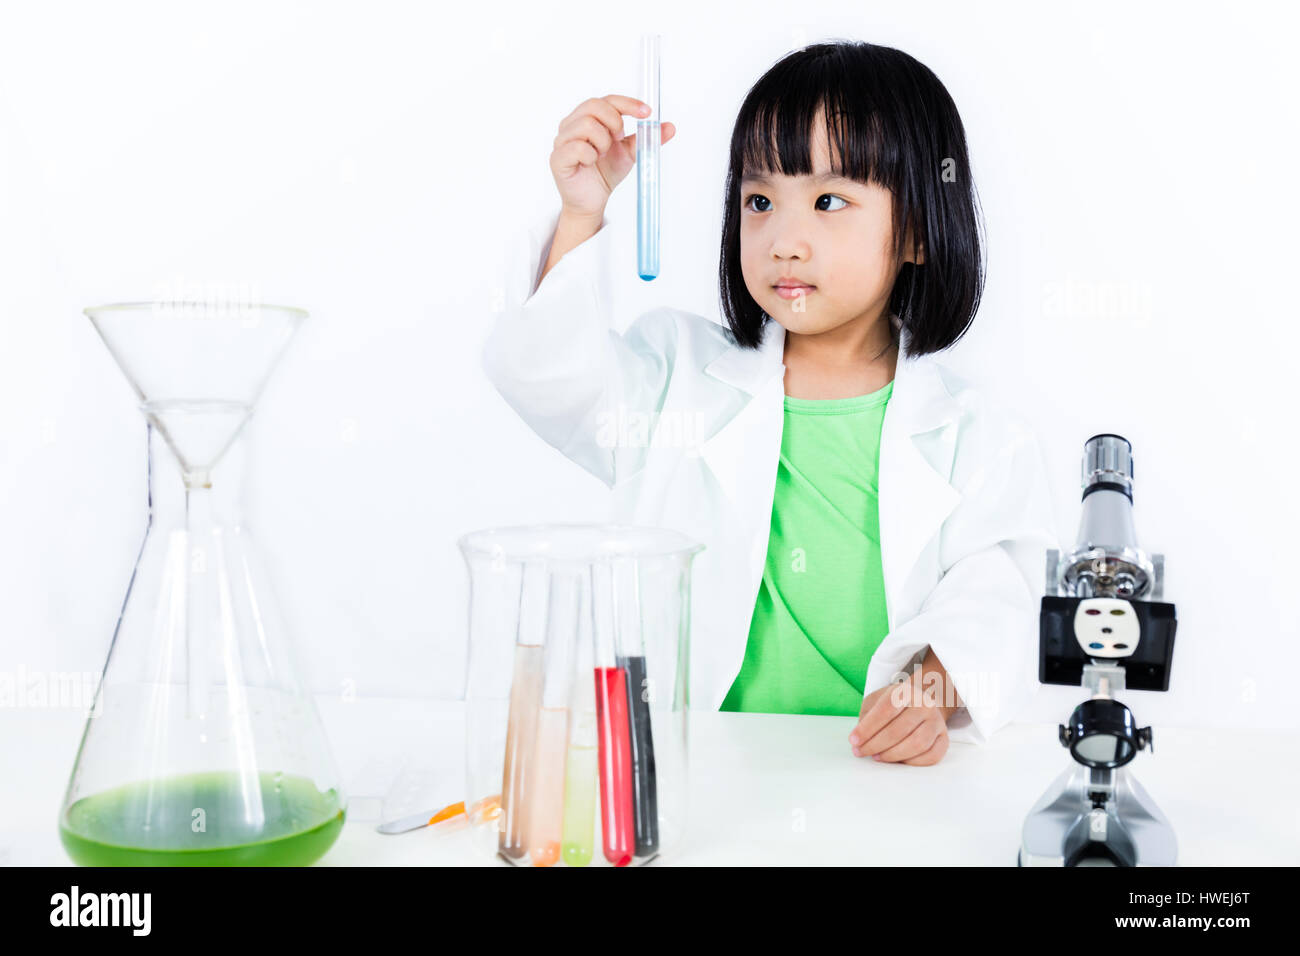 Asian Chinese Little Girl Examining Test Tube With Uniform in isolated  white background. - Stock